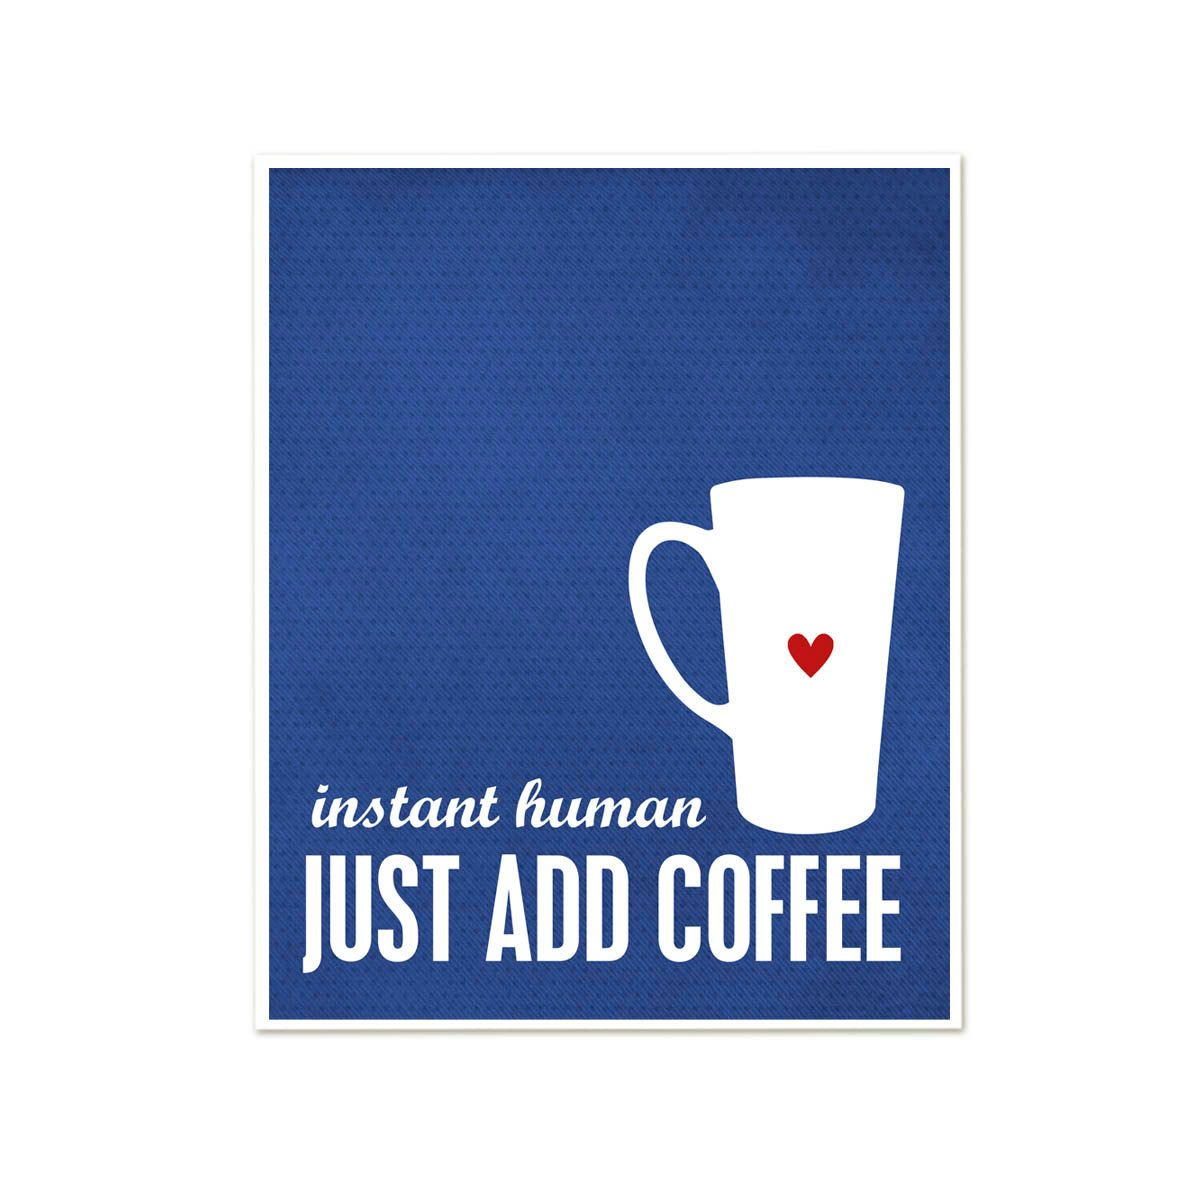 Coffee Latte Art Quotes Instant Human Just Add Coffee Kitchen Coffee Art Print